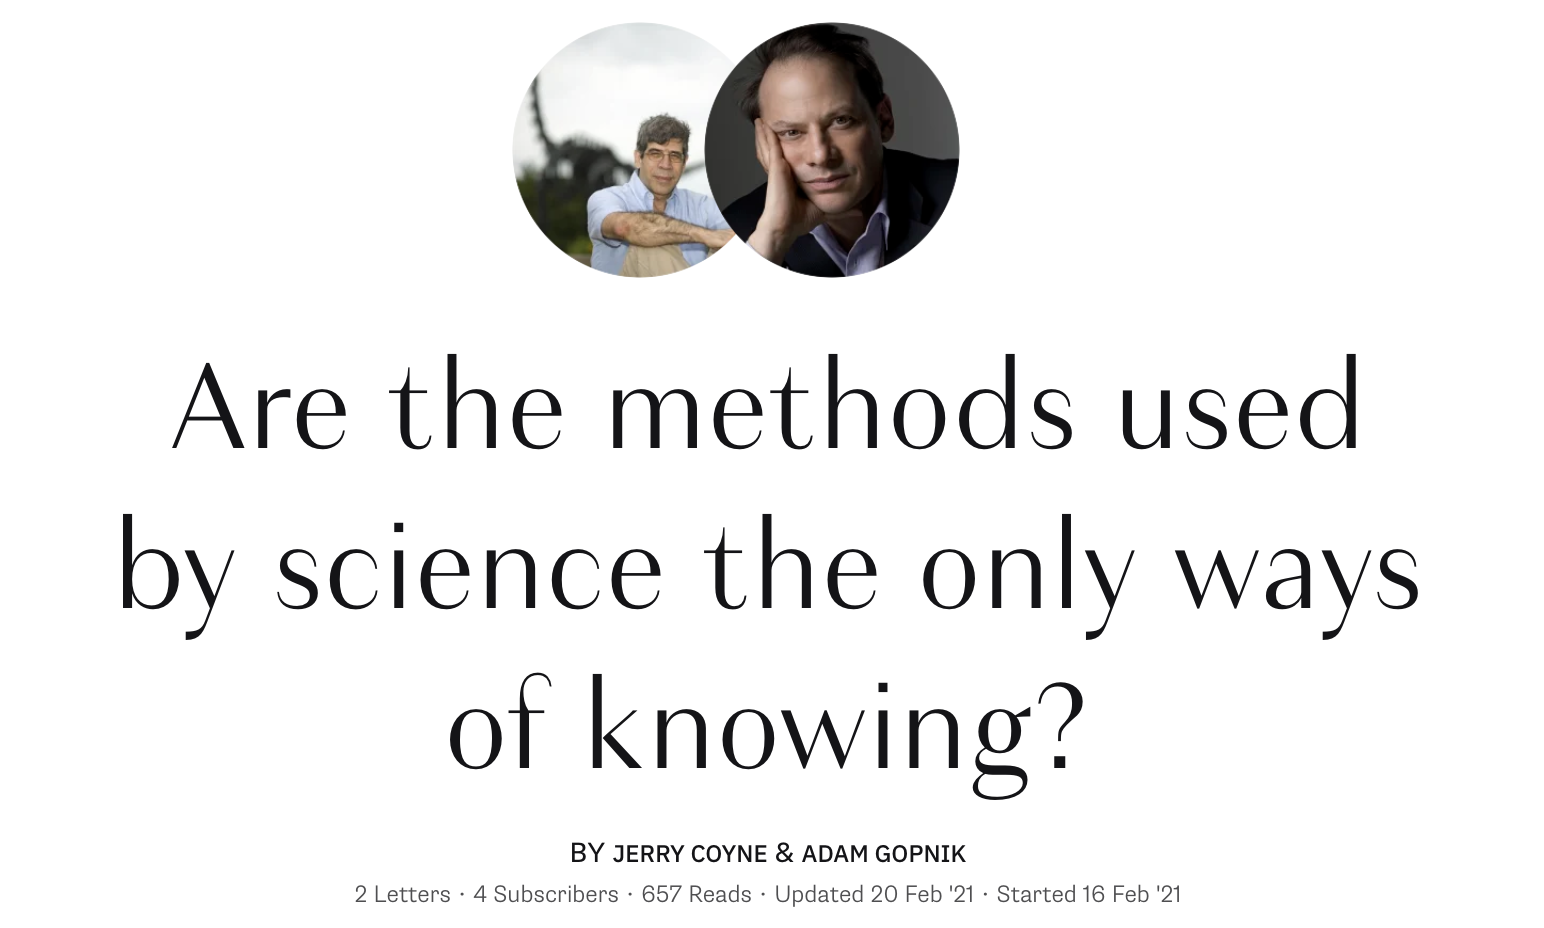 """Response from Adam Gopnik in the """"Ways of knowing"""" discussion"""